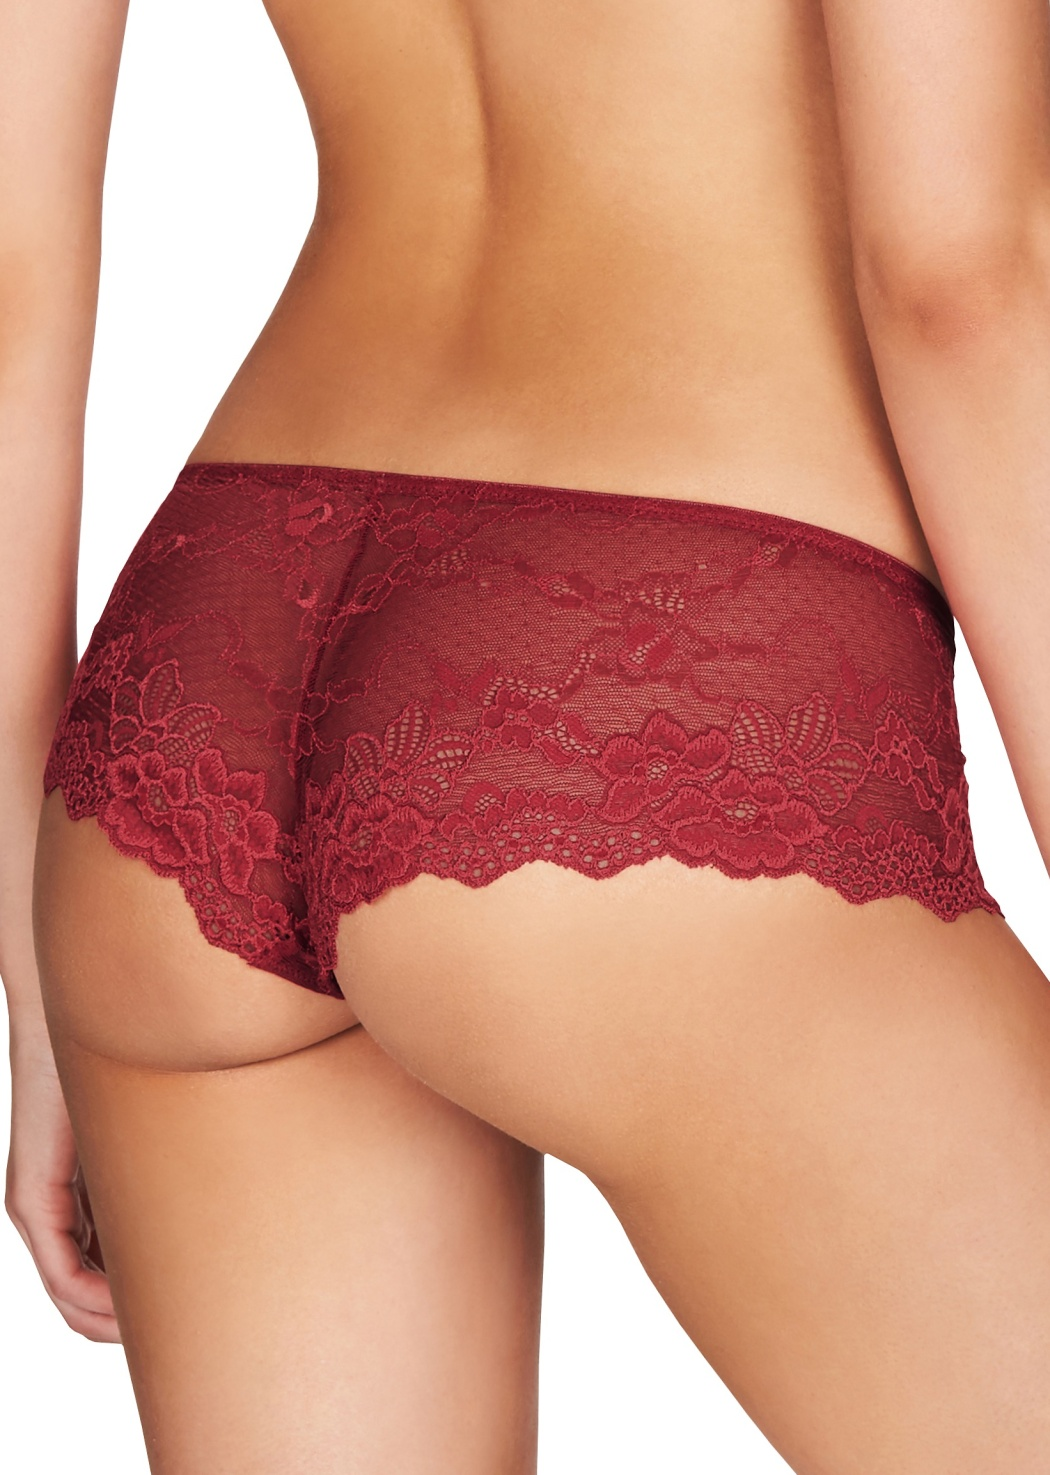 Brazilky MY FIT LACE Pleasure State P38-4053 S Červená